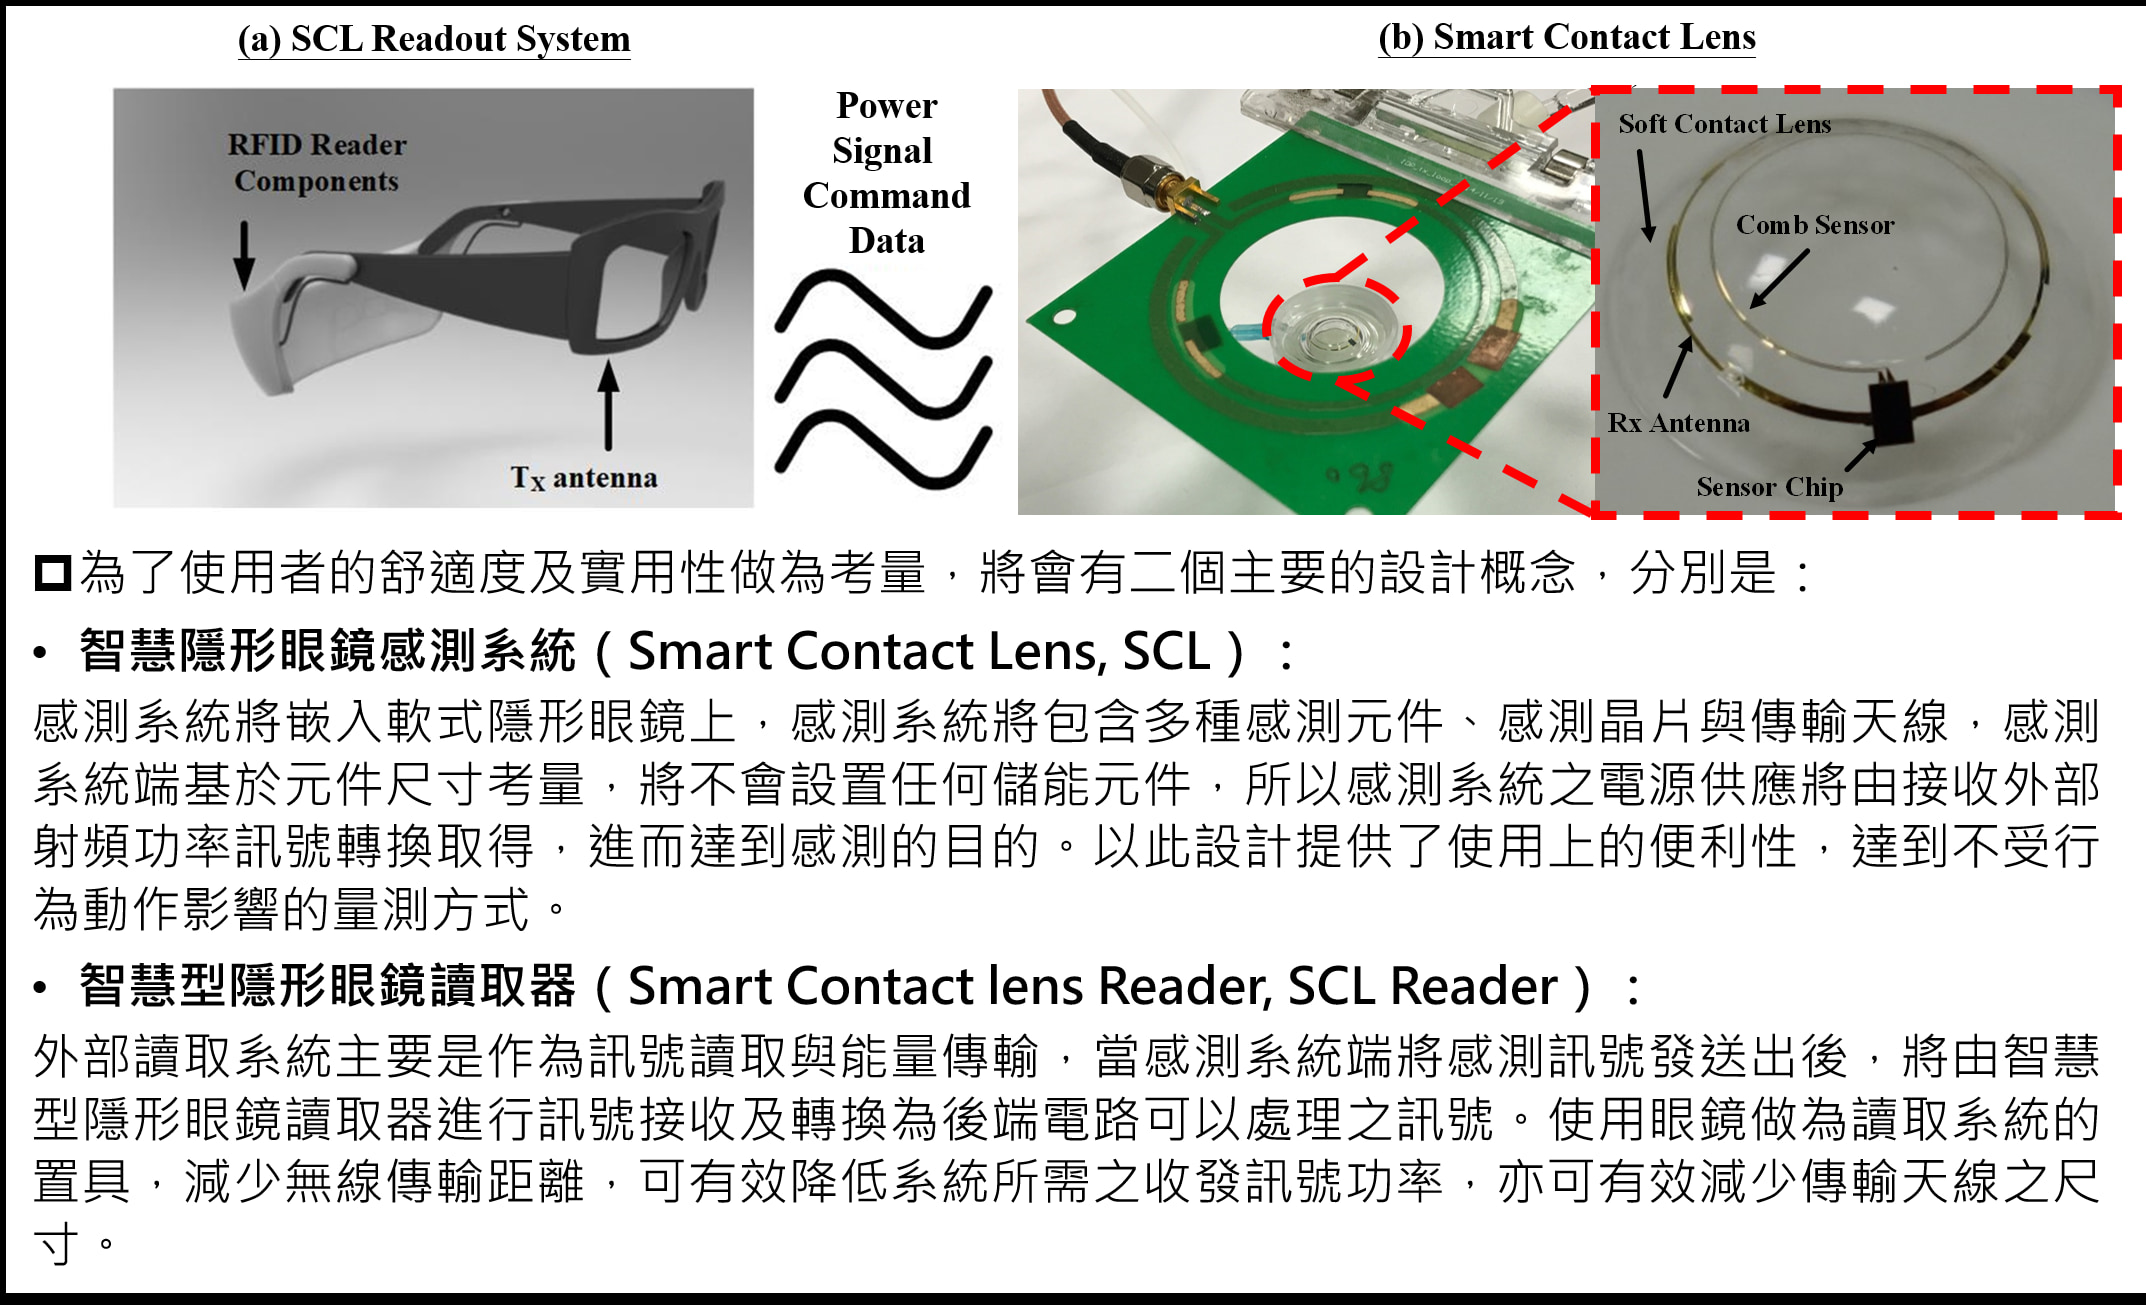 The Development of Smart Contact Lens System: Taking Dry Eye Syndrome Diagnosis as an Example